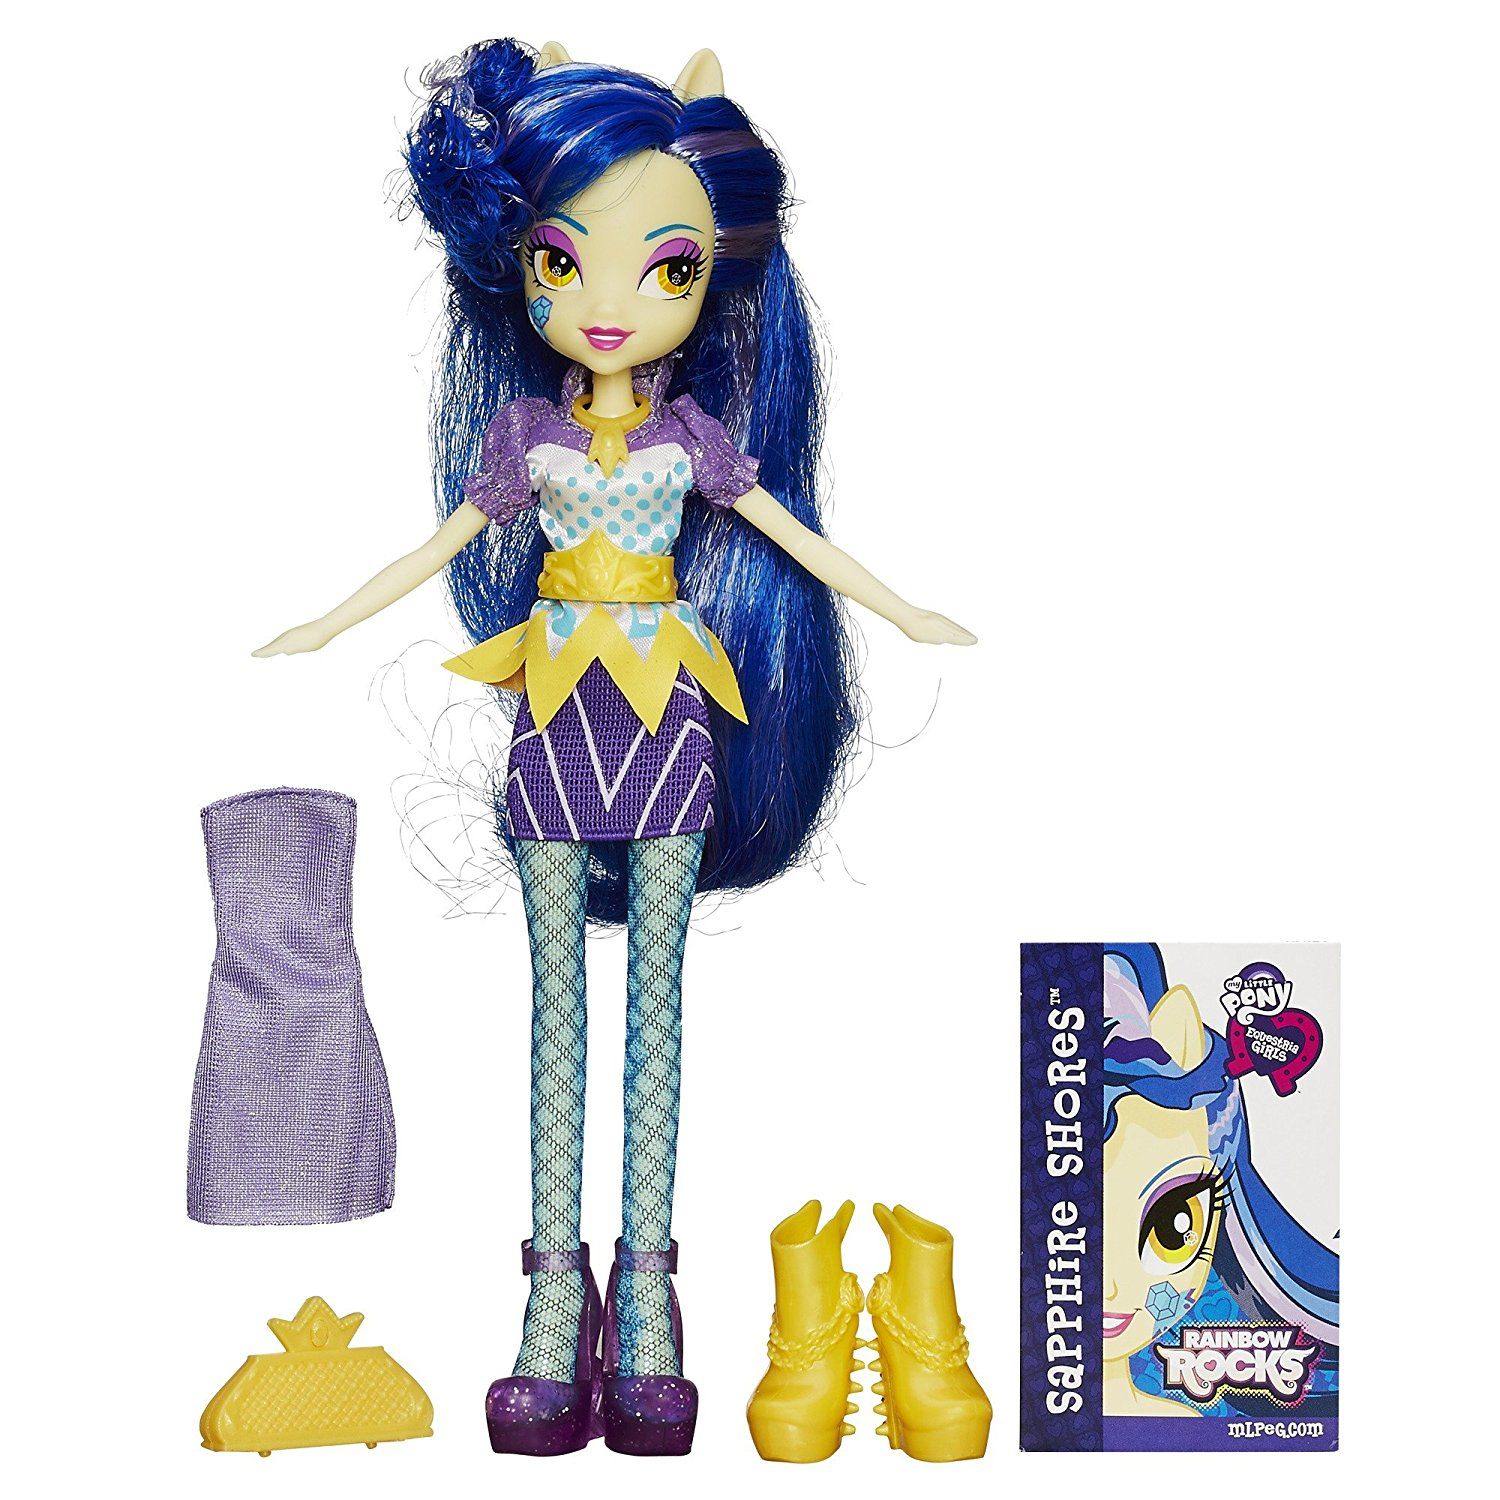 Equestria Girls Rainbow Rocks Sapphire Shores Doll with Fashions, Equestria Girls doll is a rockin' concert girl By My Little Pony